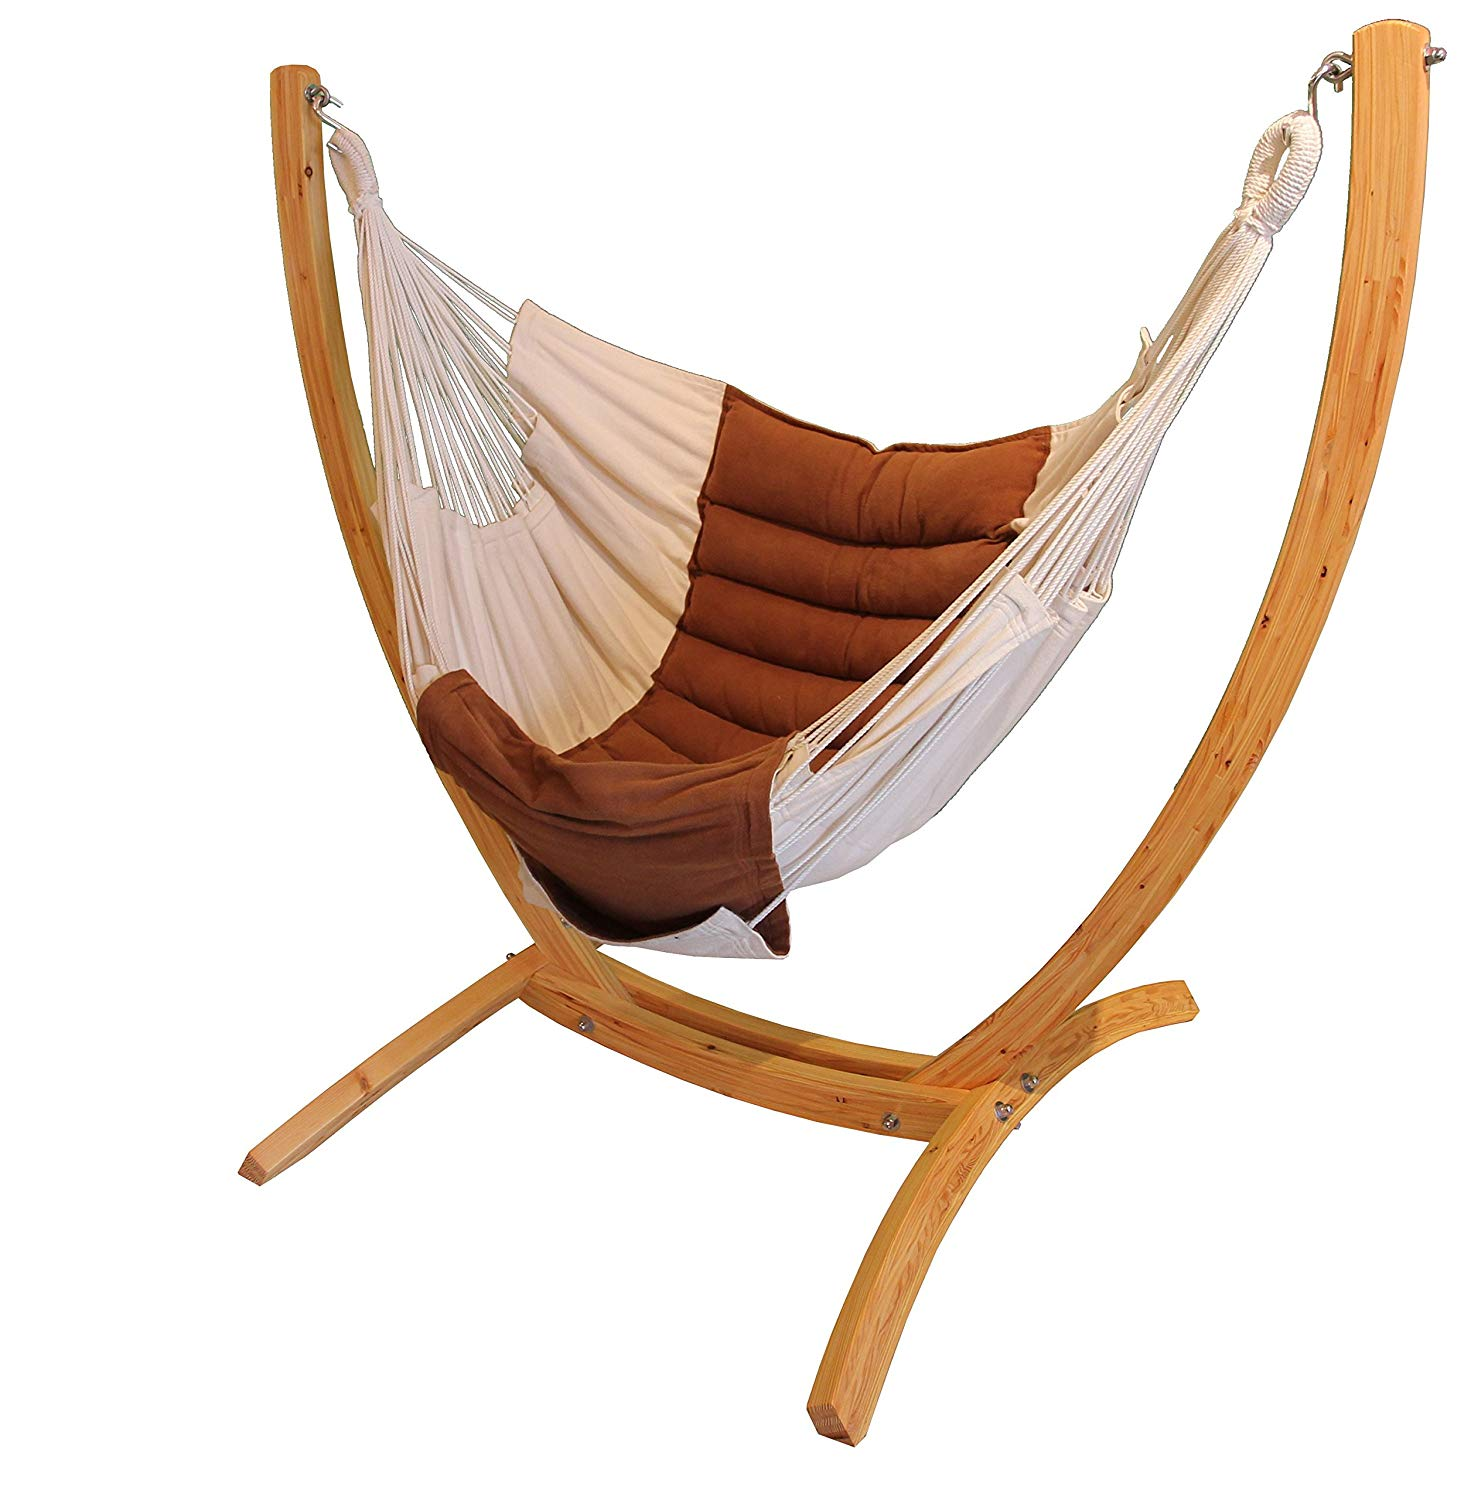 Hanging Chair Rocker Lounger Brown-Ecru Boho with stand